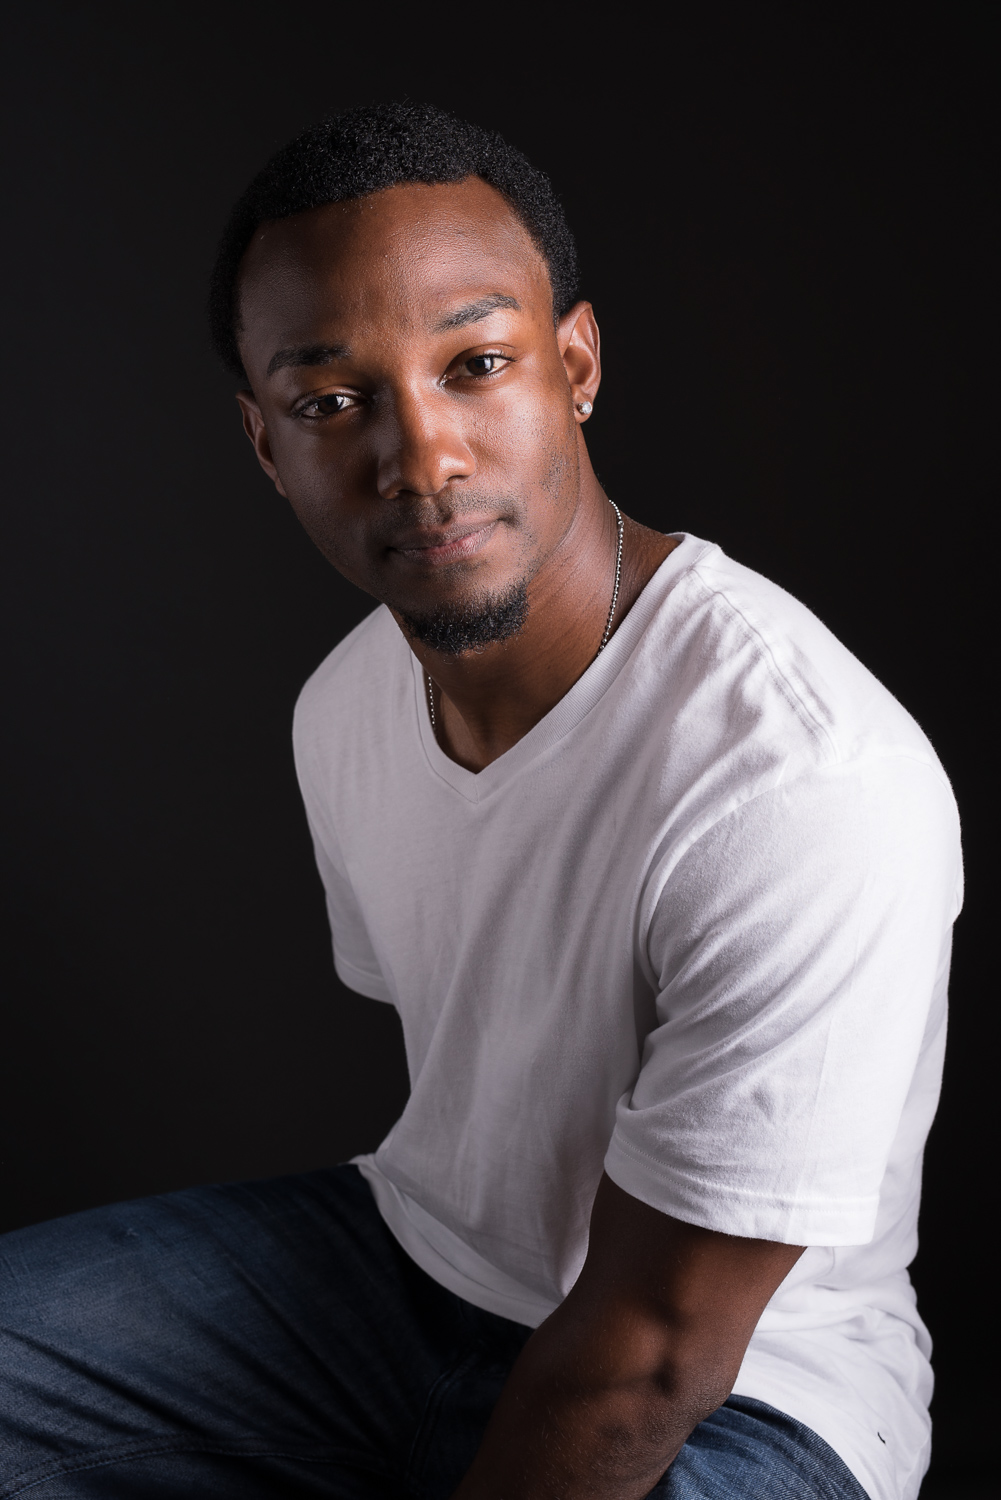 engaging portrait of african american male model with kind, expressive eyes